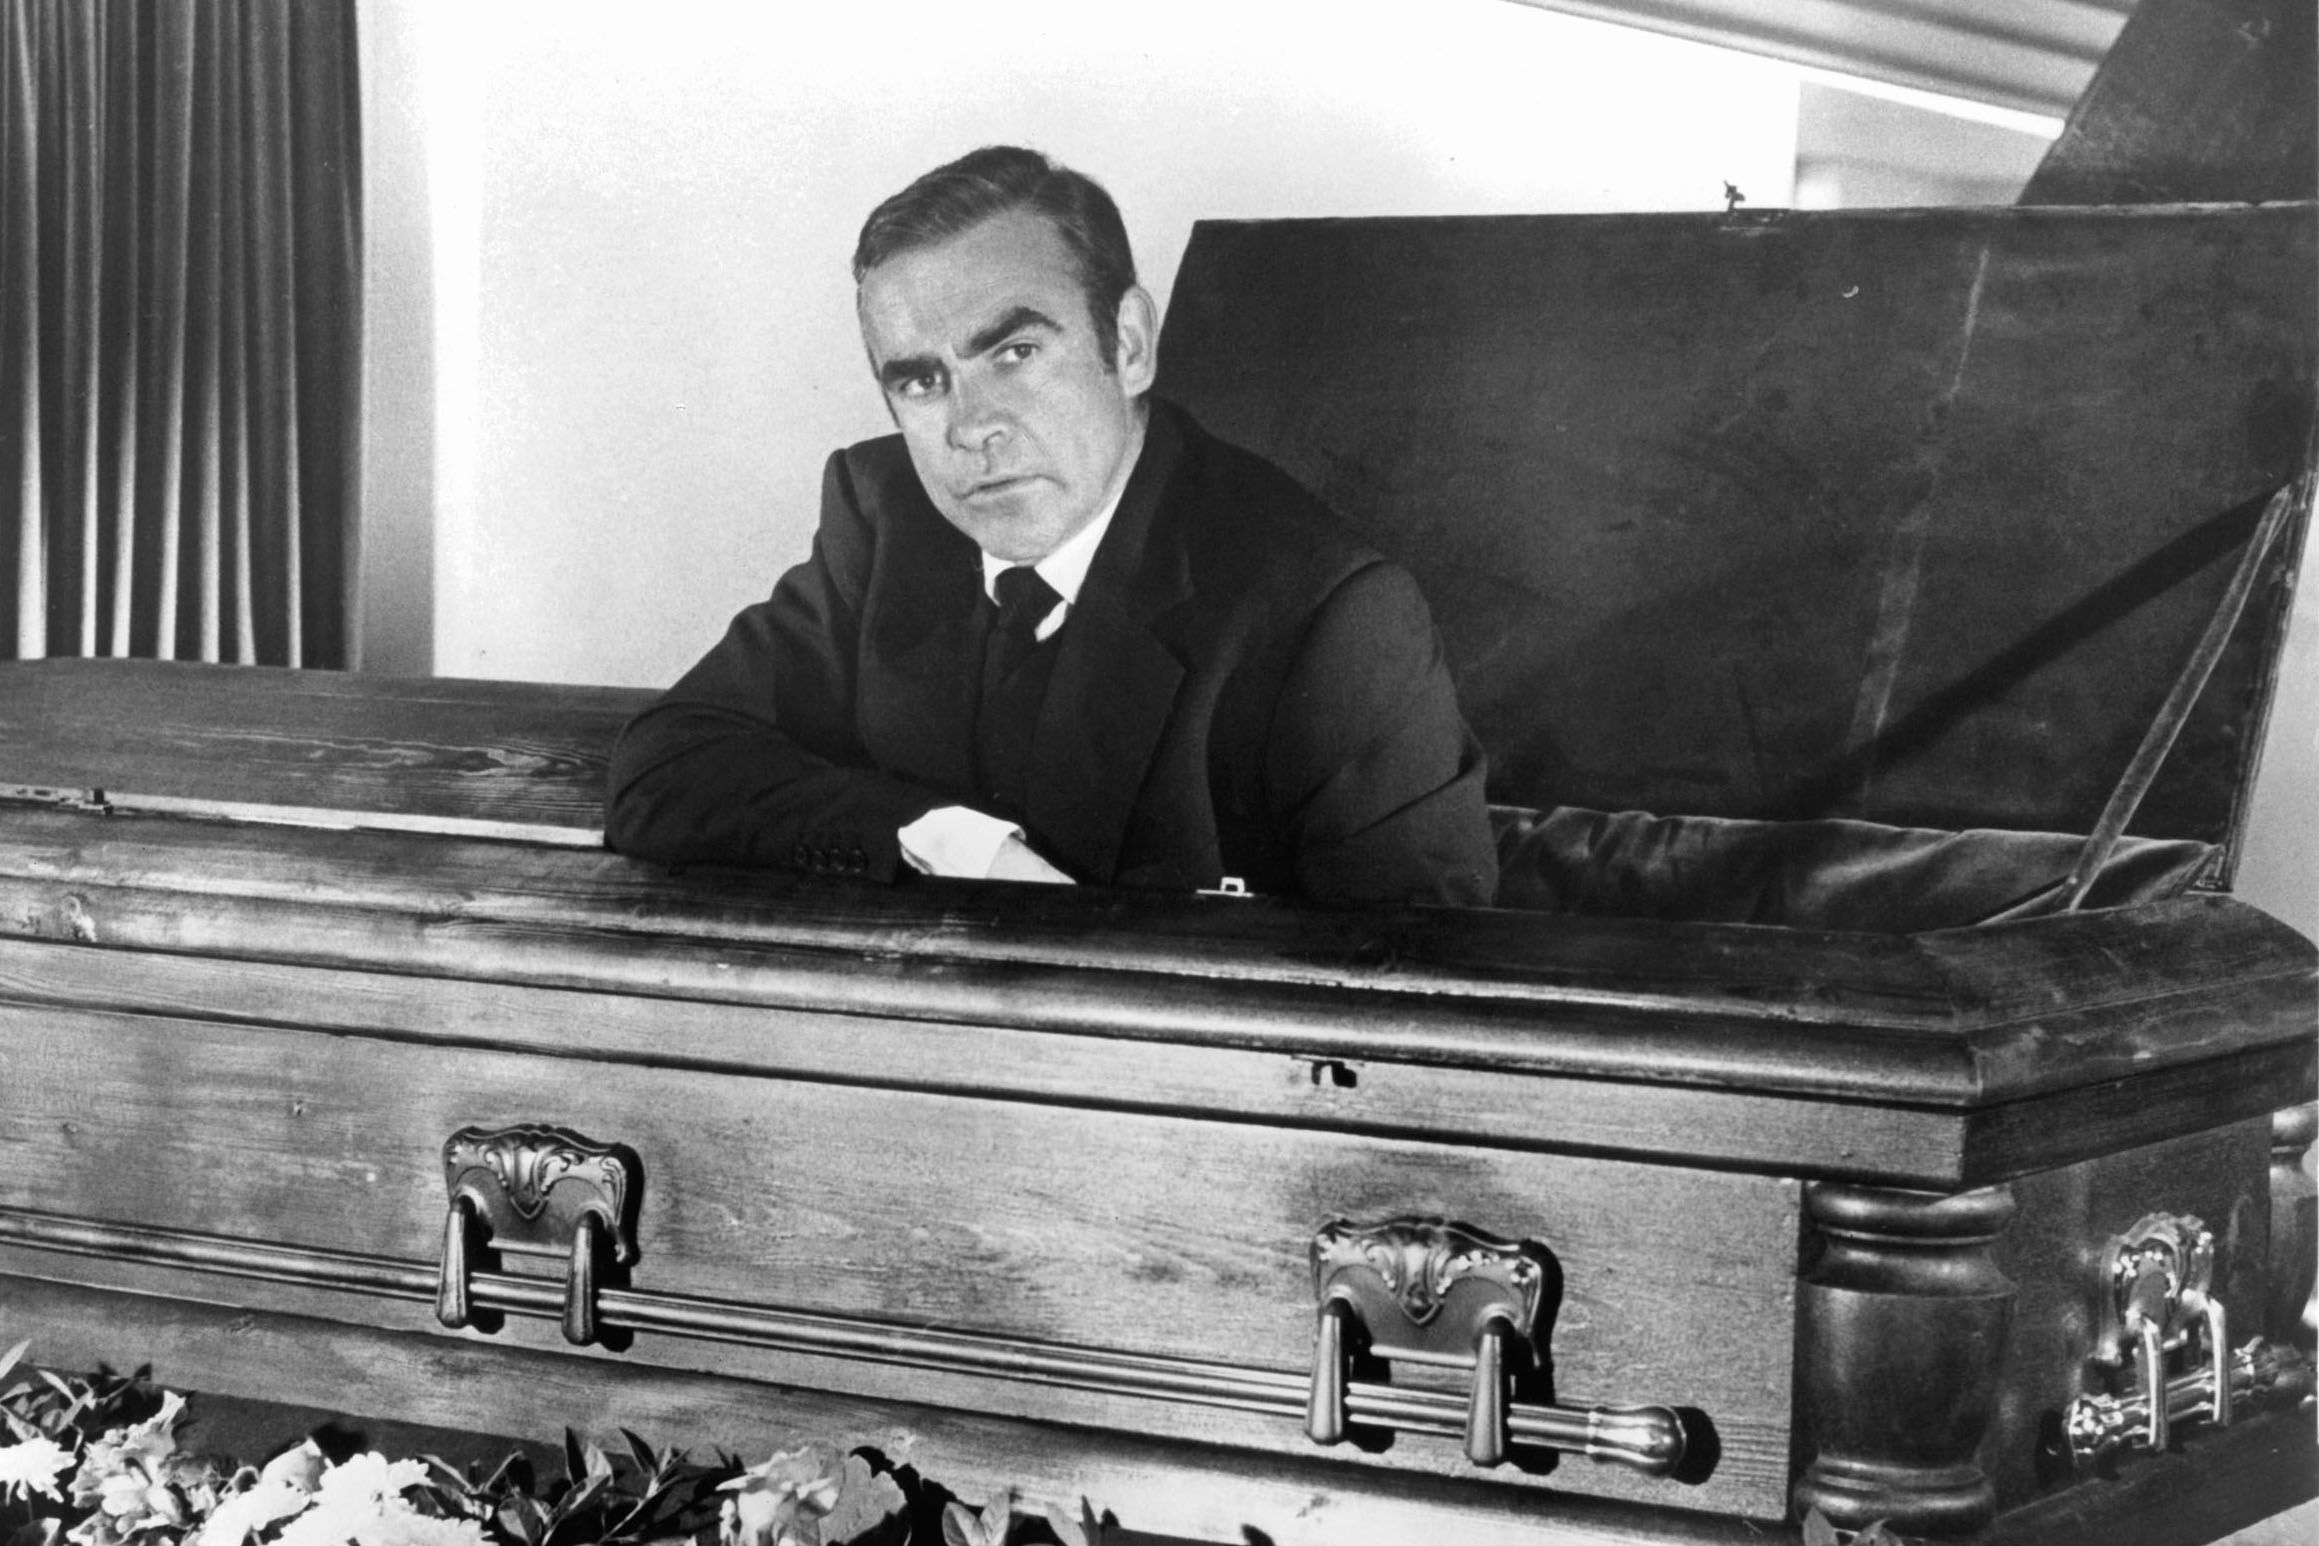 Sean Connery sitting in a coffin in a scene from Diamonds Are Forever.